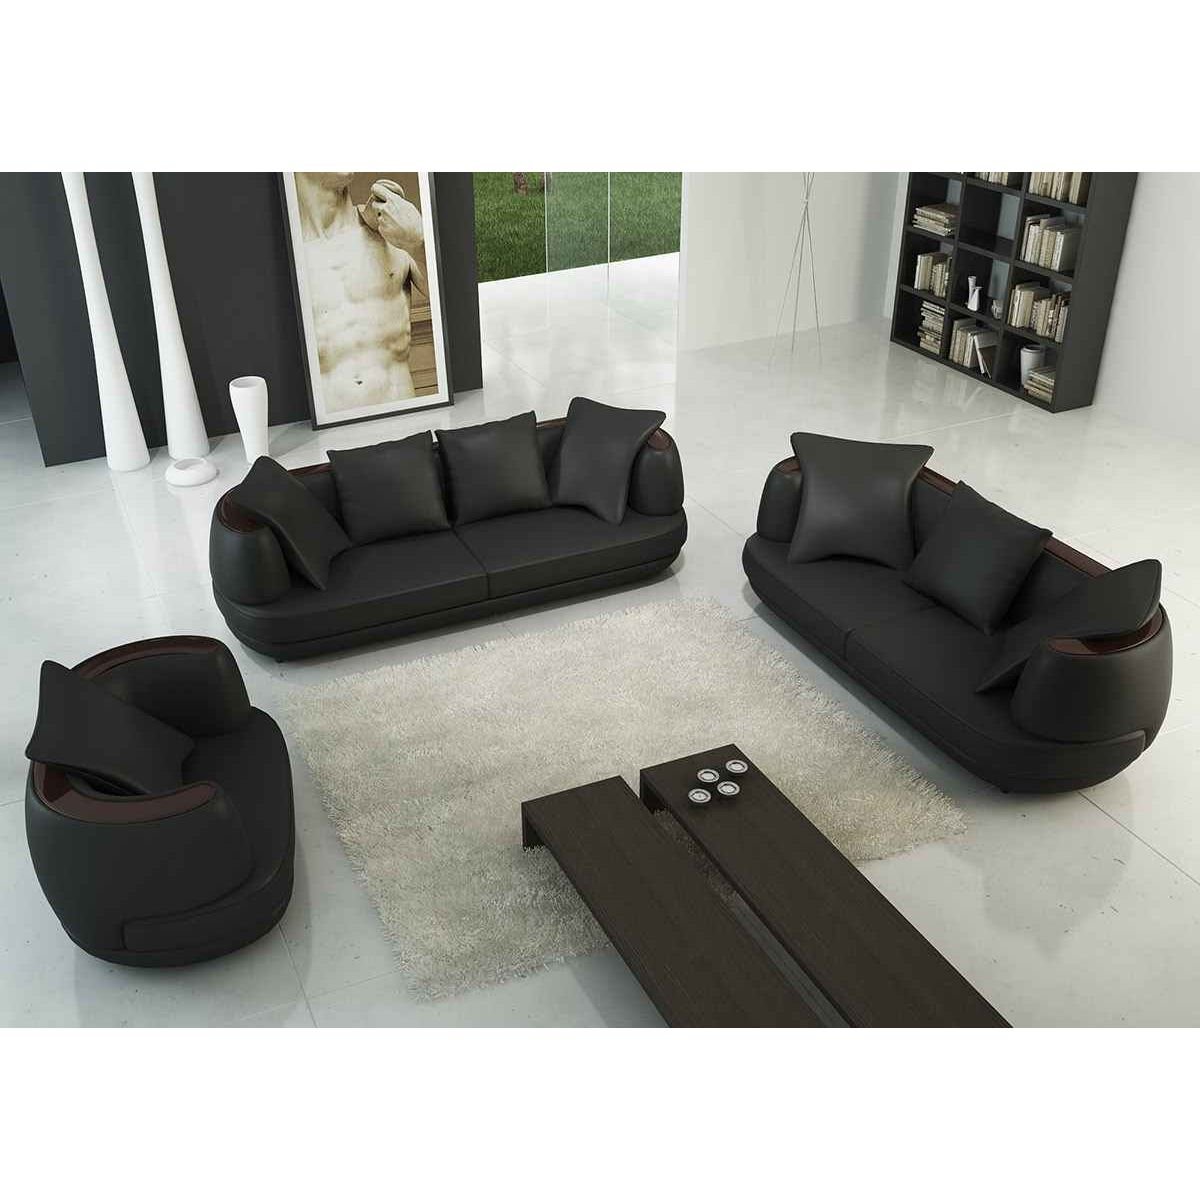 deco in paris ensemble canape 3 2 1 places en cuir ryga. Black Bedroom Furniture Sets. Home Design Ideas